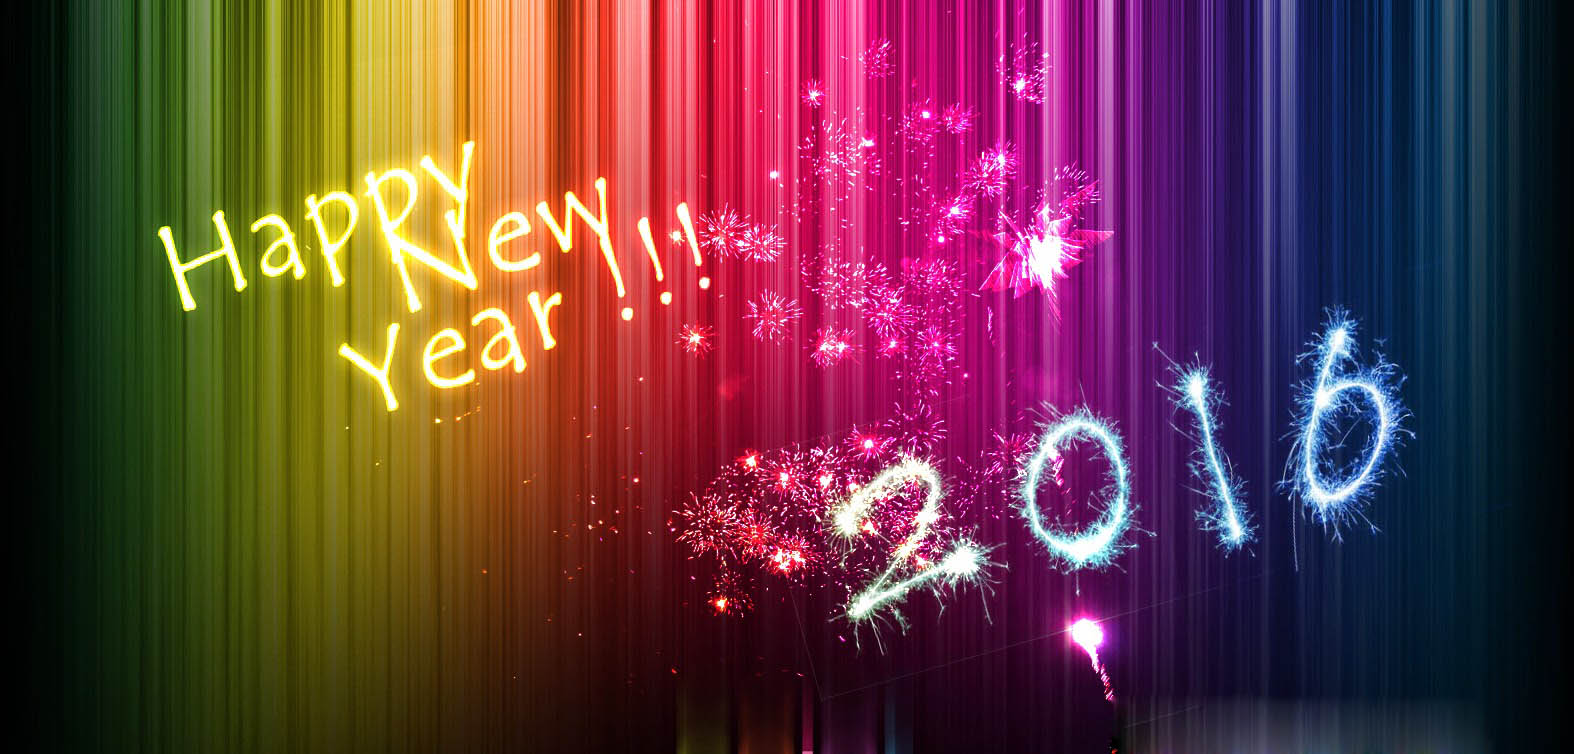 New Year 2016 Wallpaper Hd Full Hd Pictures